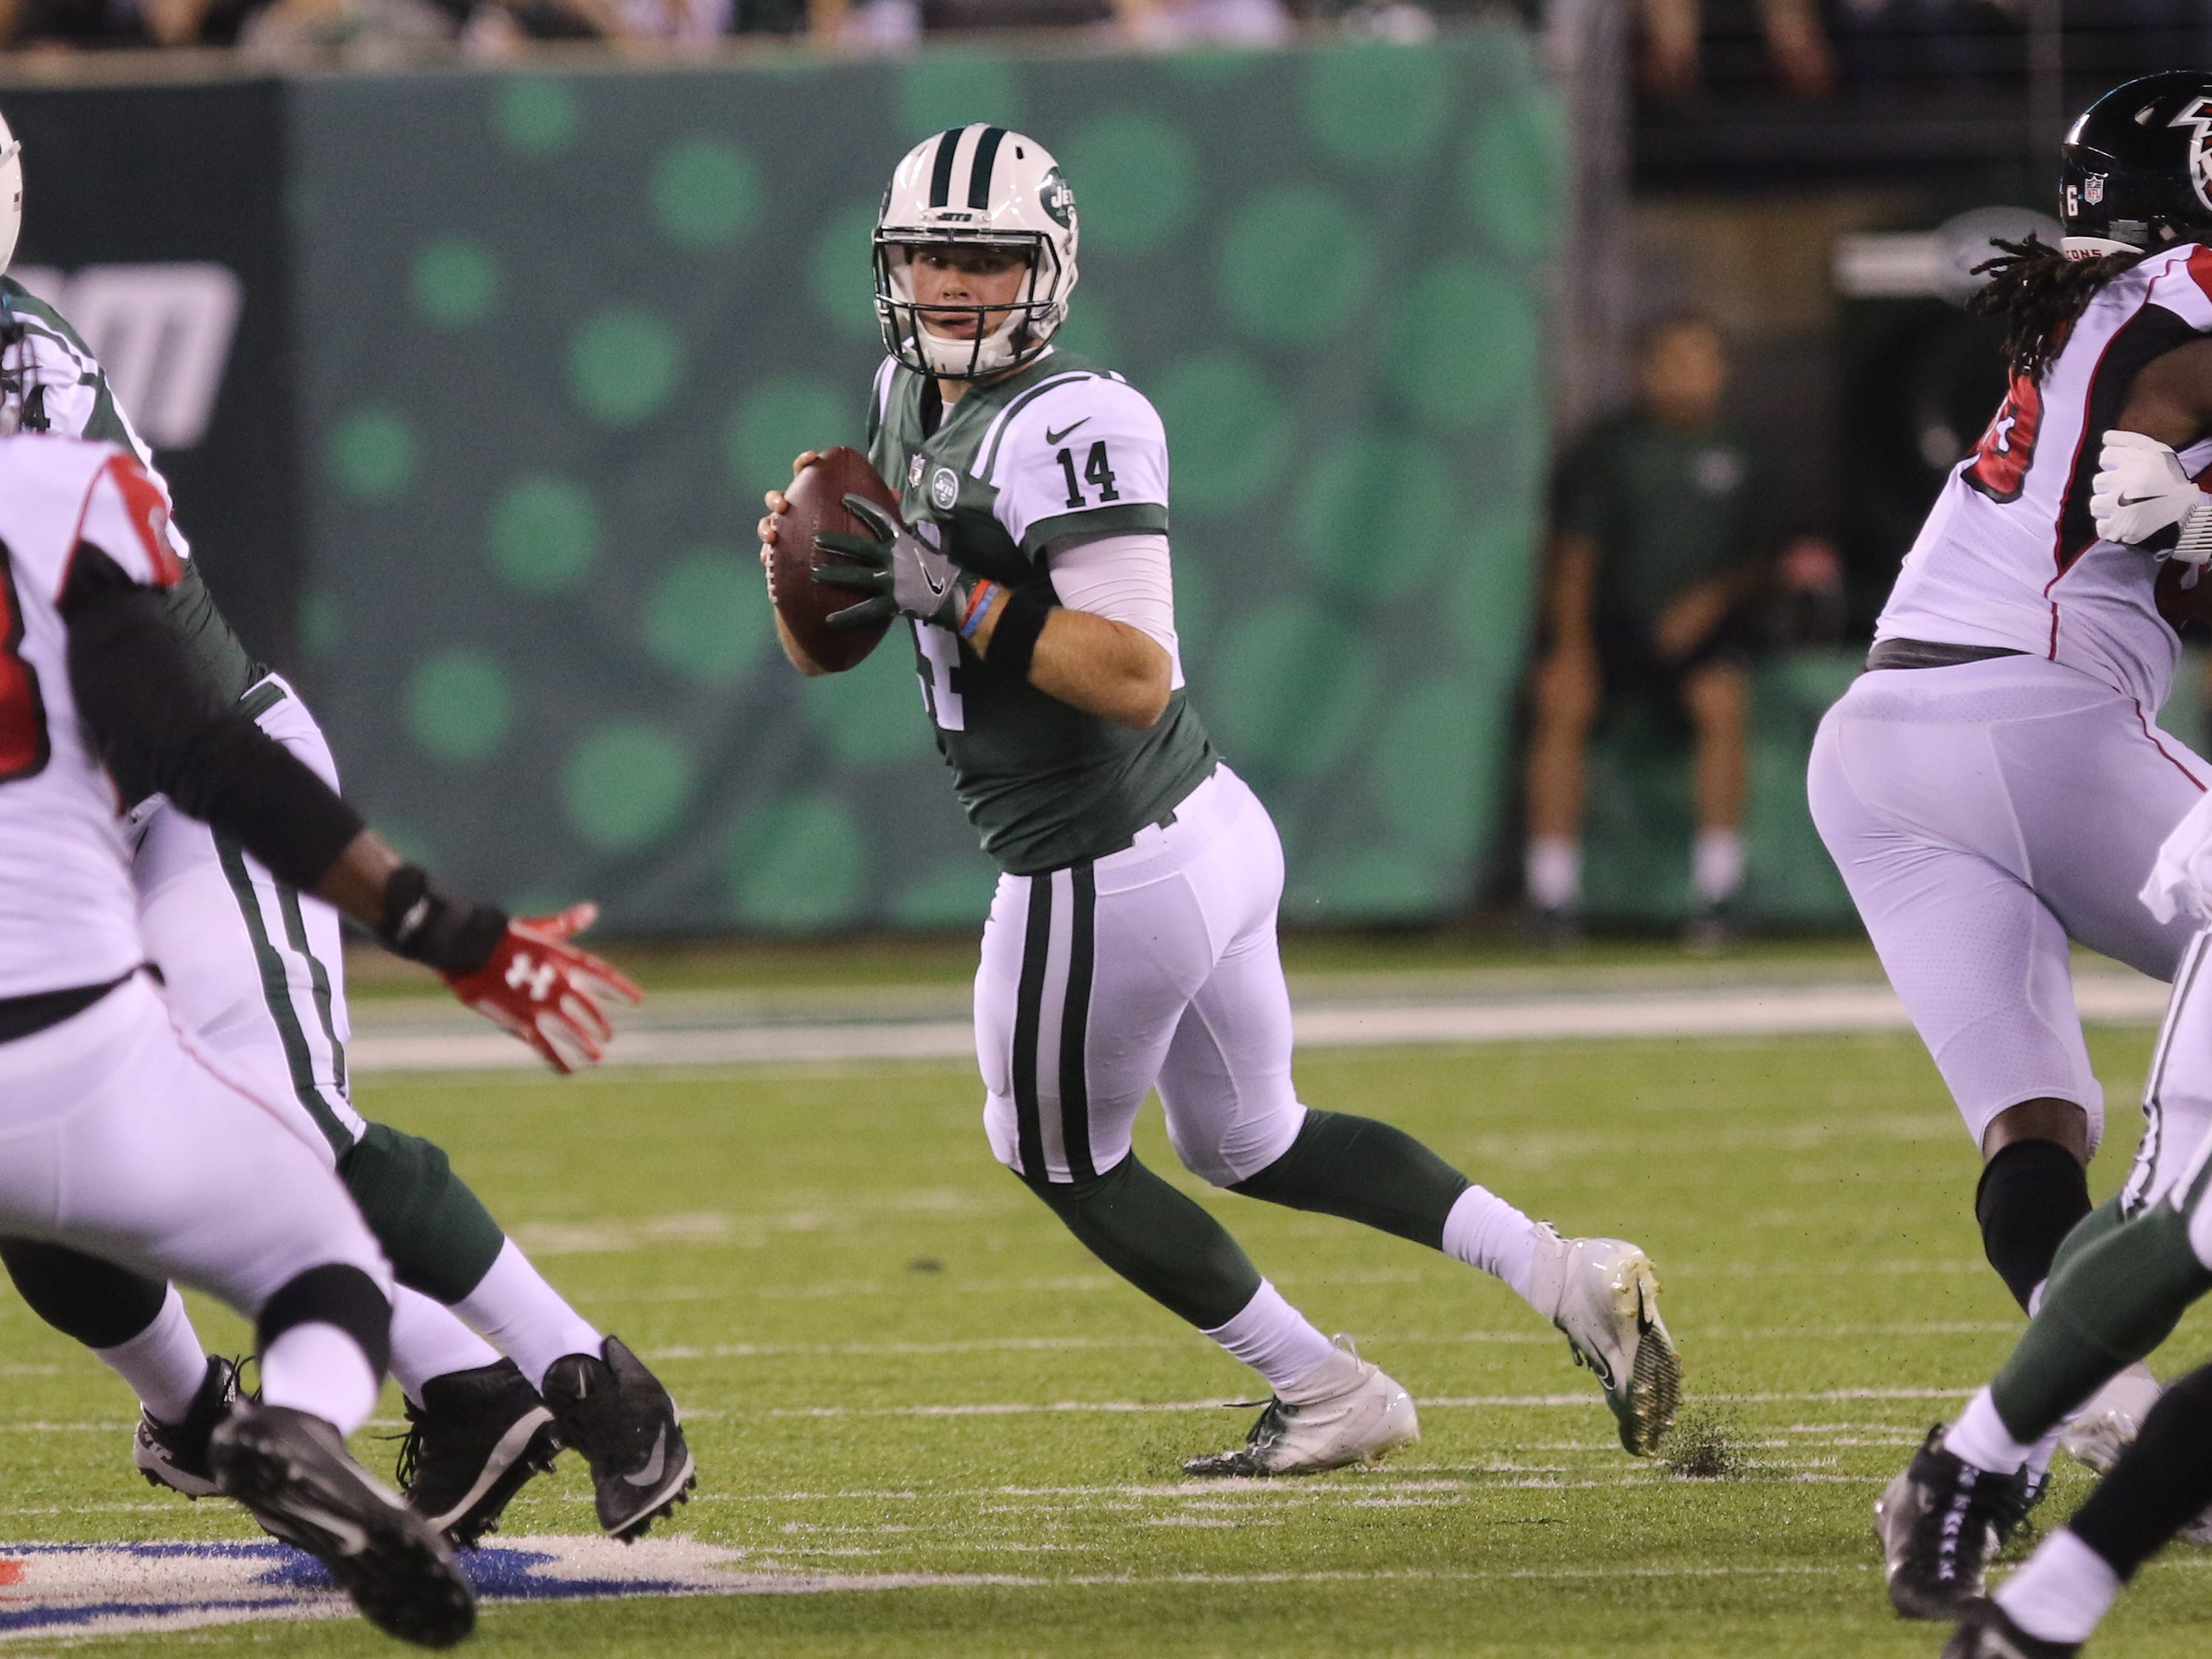 Jets quarterback Sam Darnold goes back to pass in the fourth quarter of a preseason game against the Atlanta Falcons at MetLife Stadium, East Rutherford, on Friday, Aug. 10, 2018. The Jets won, 17-0